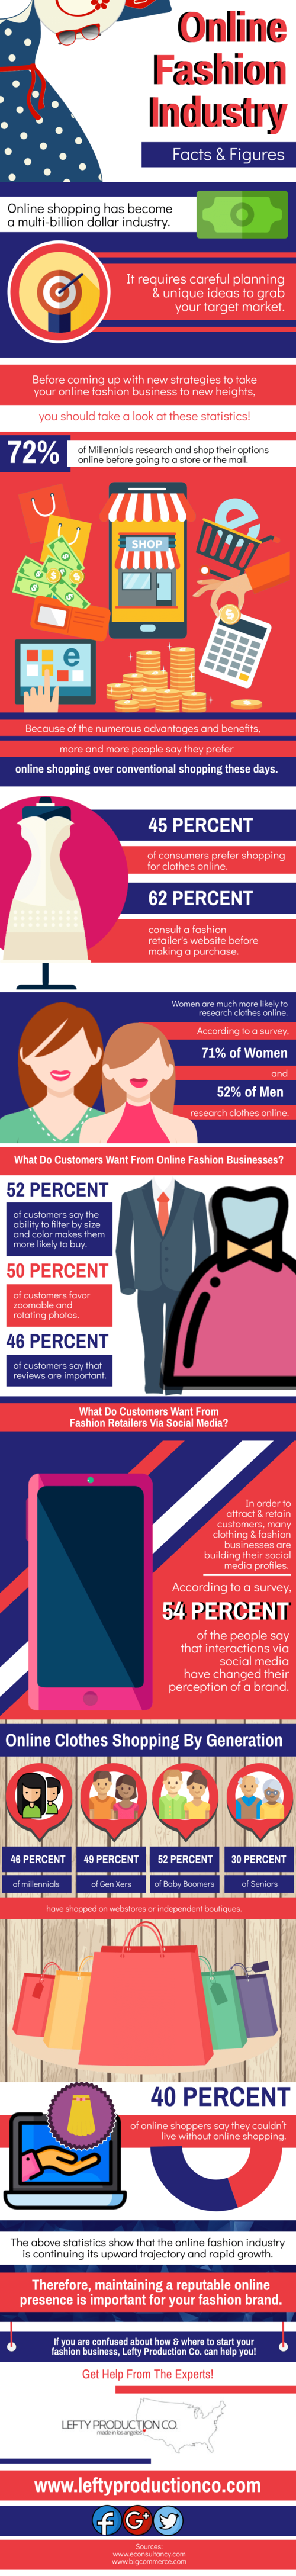 Online+Fashion+Industry+Facts+&+Figures.png